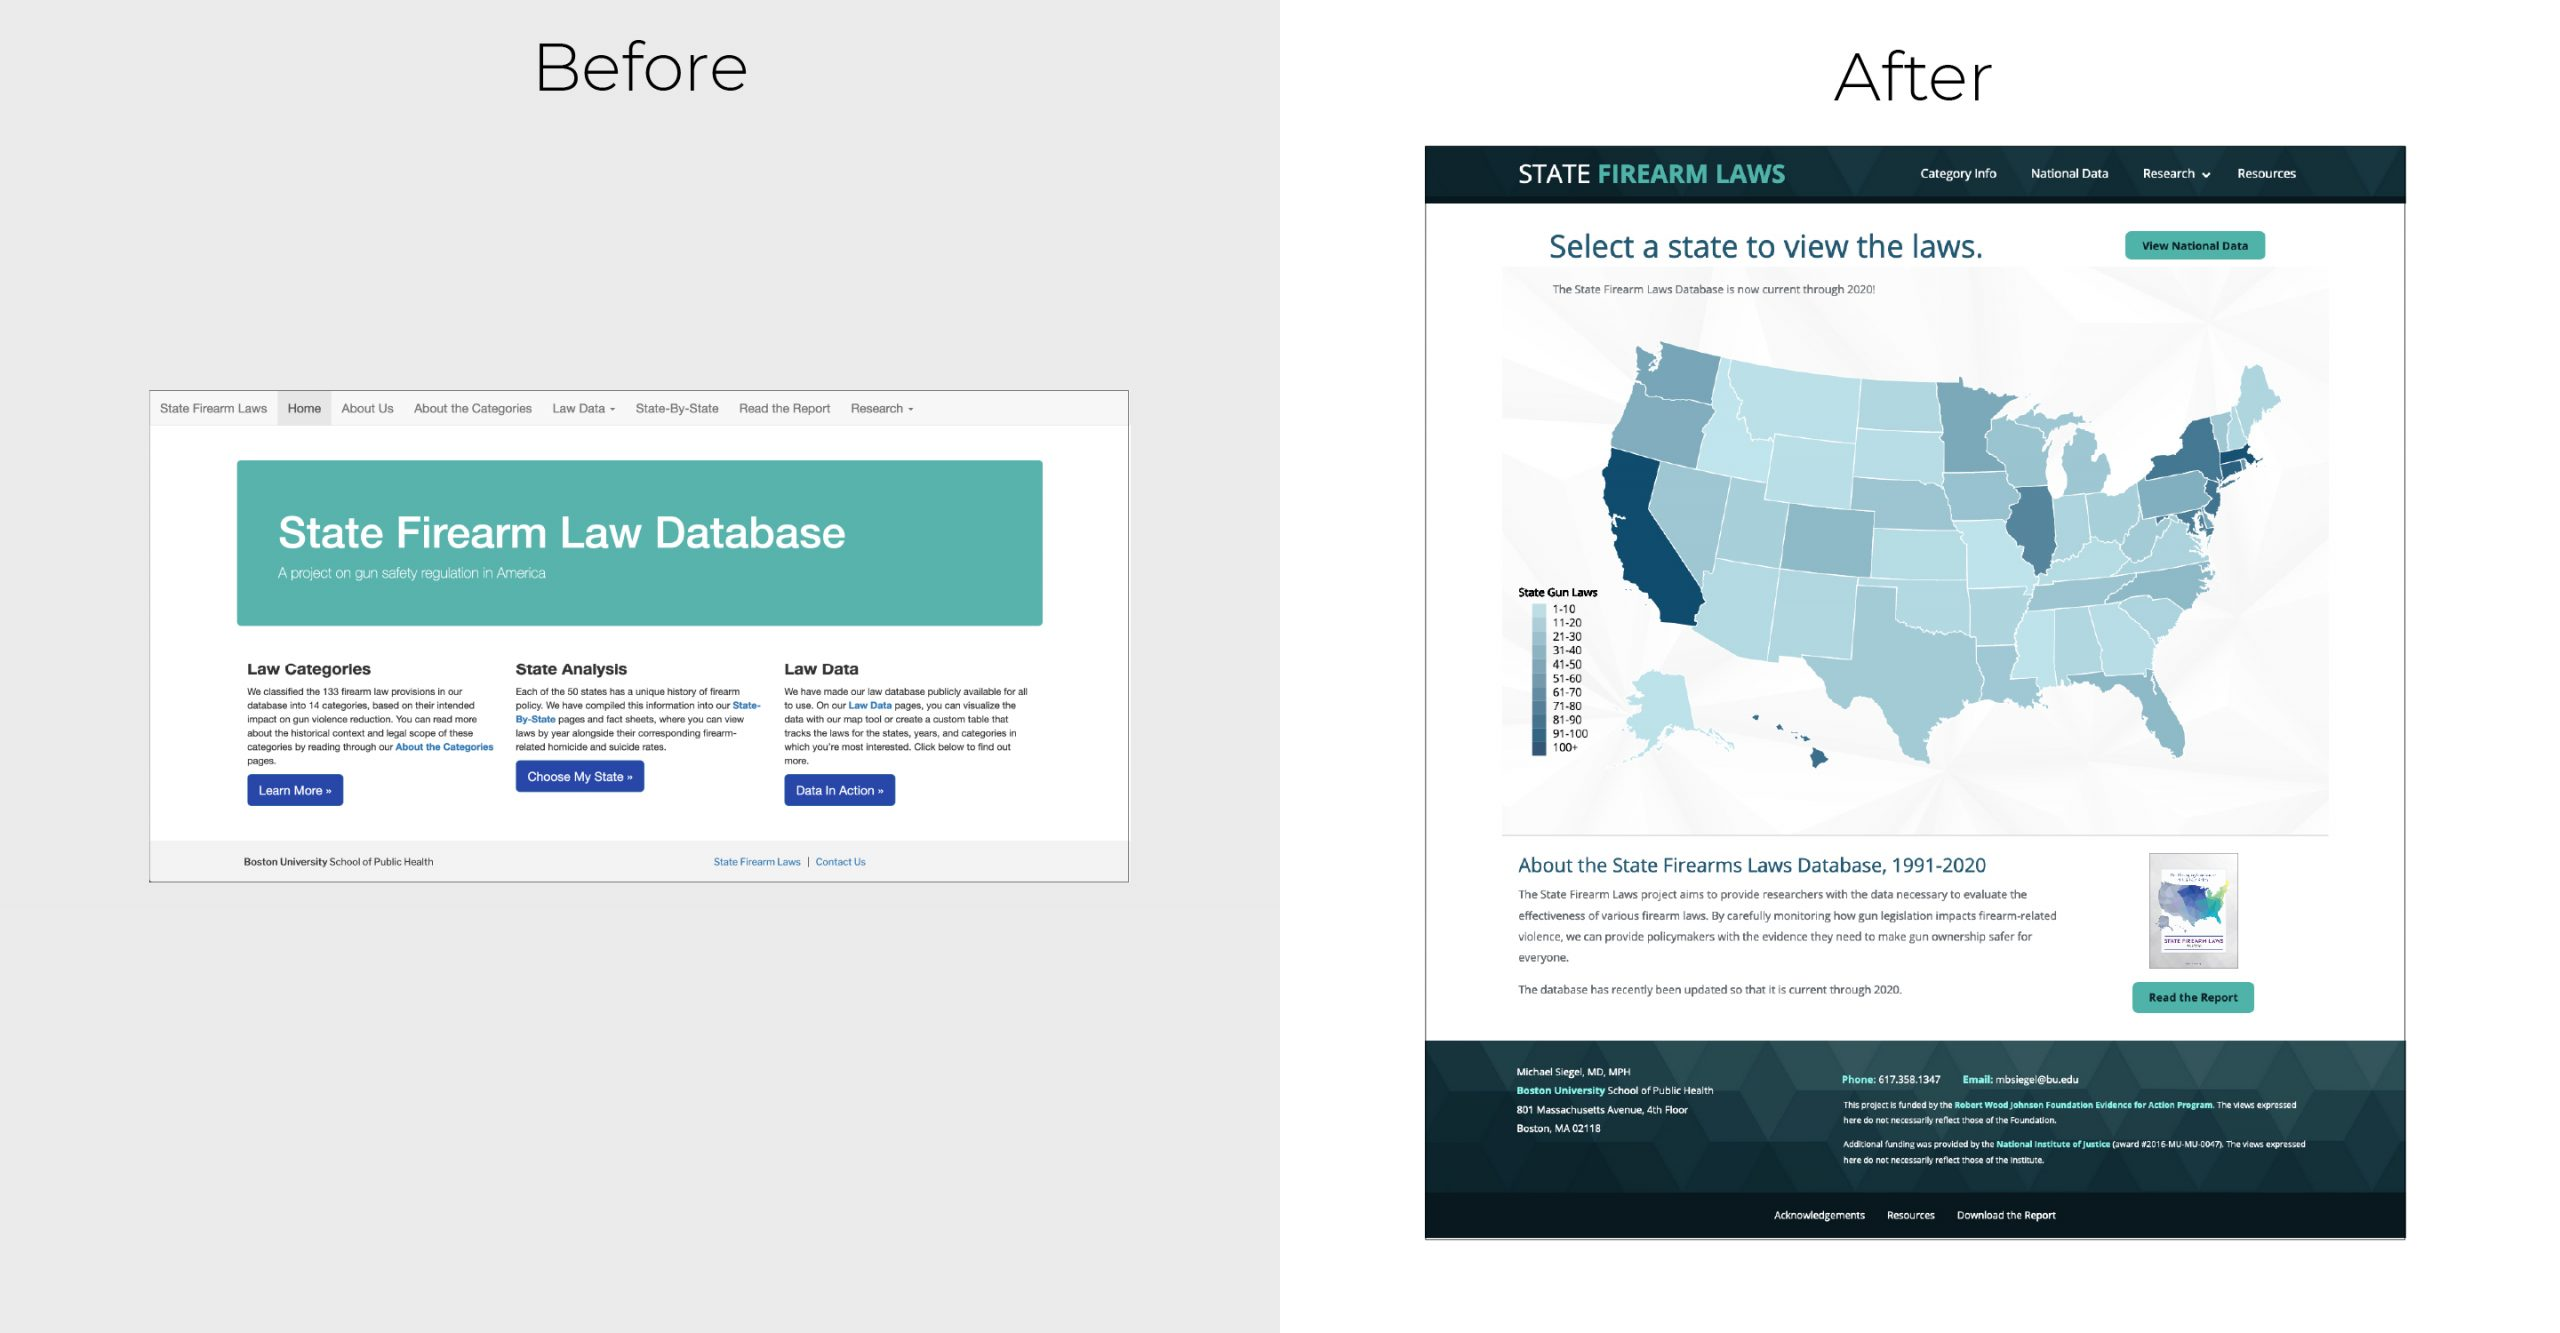 State Firearm Laws homepage before and after the redesign